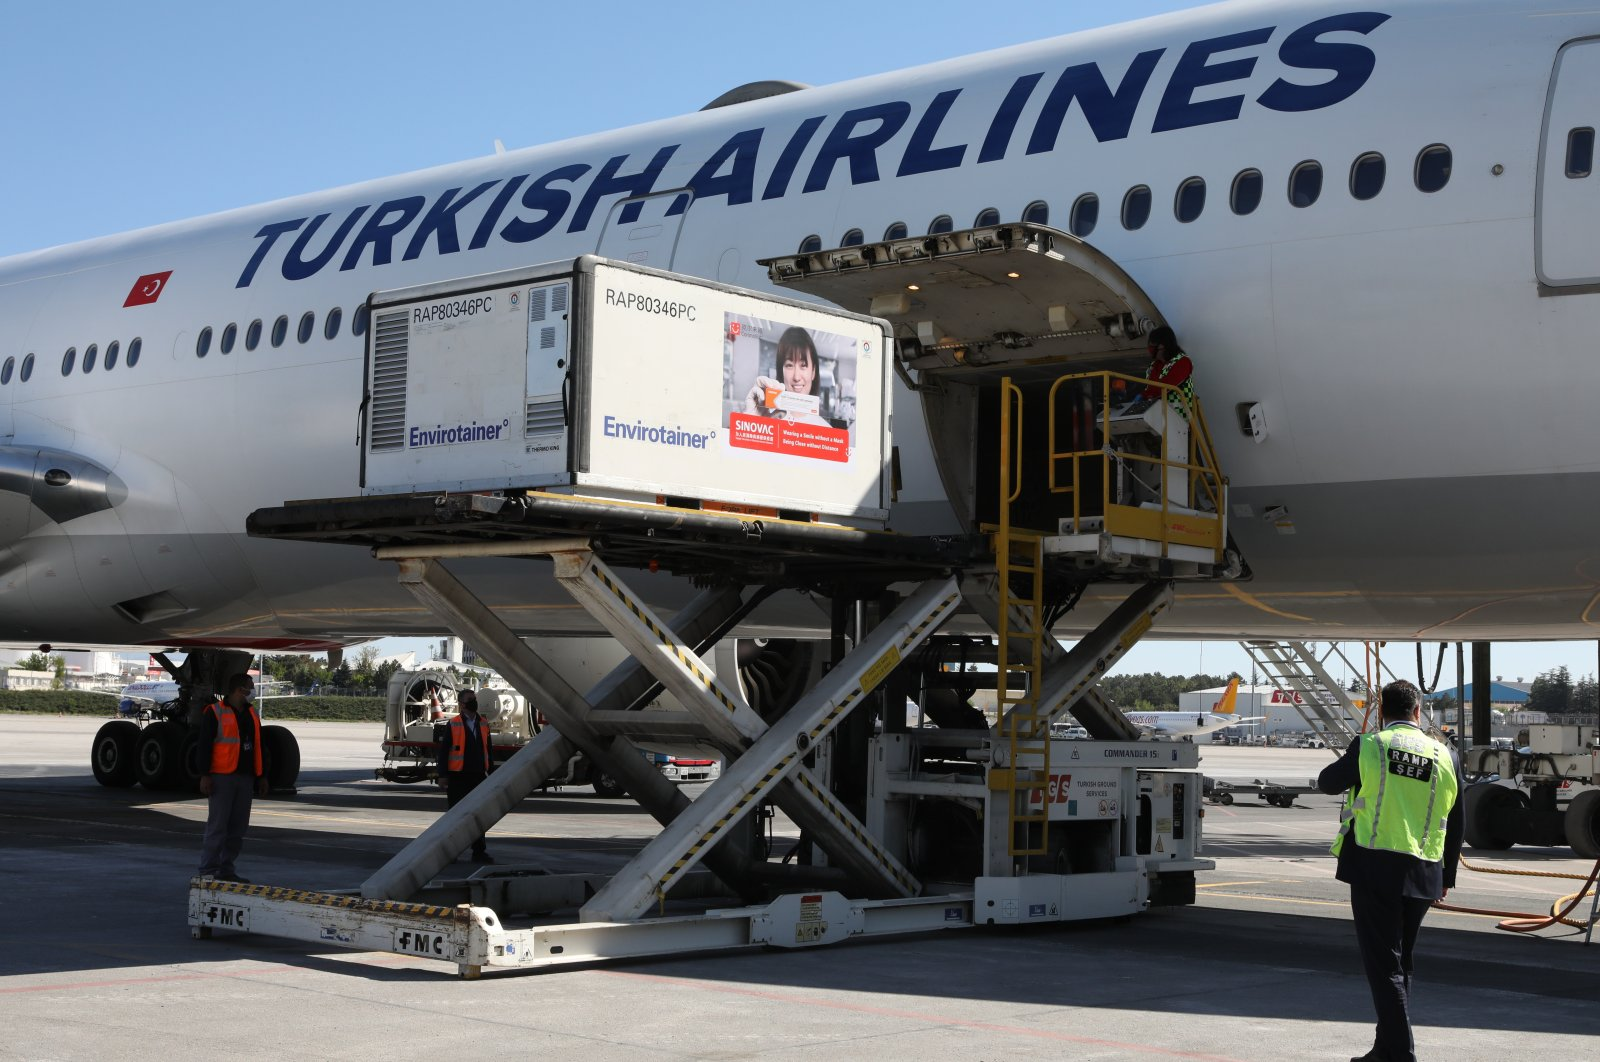 A container carrying CoronaVac being unloaded from an airplane, at Esenboğa Airport, in the capital Ankara, Turkey, May 12, 2021. (AA PHOTO)